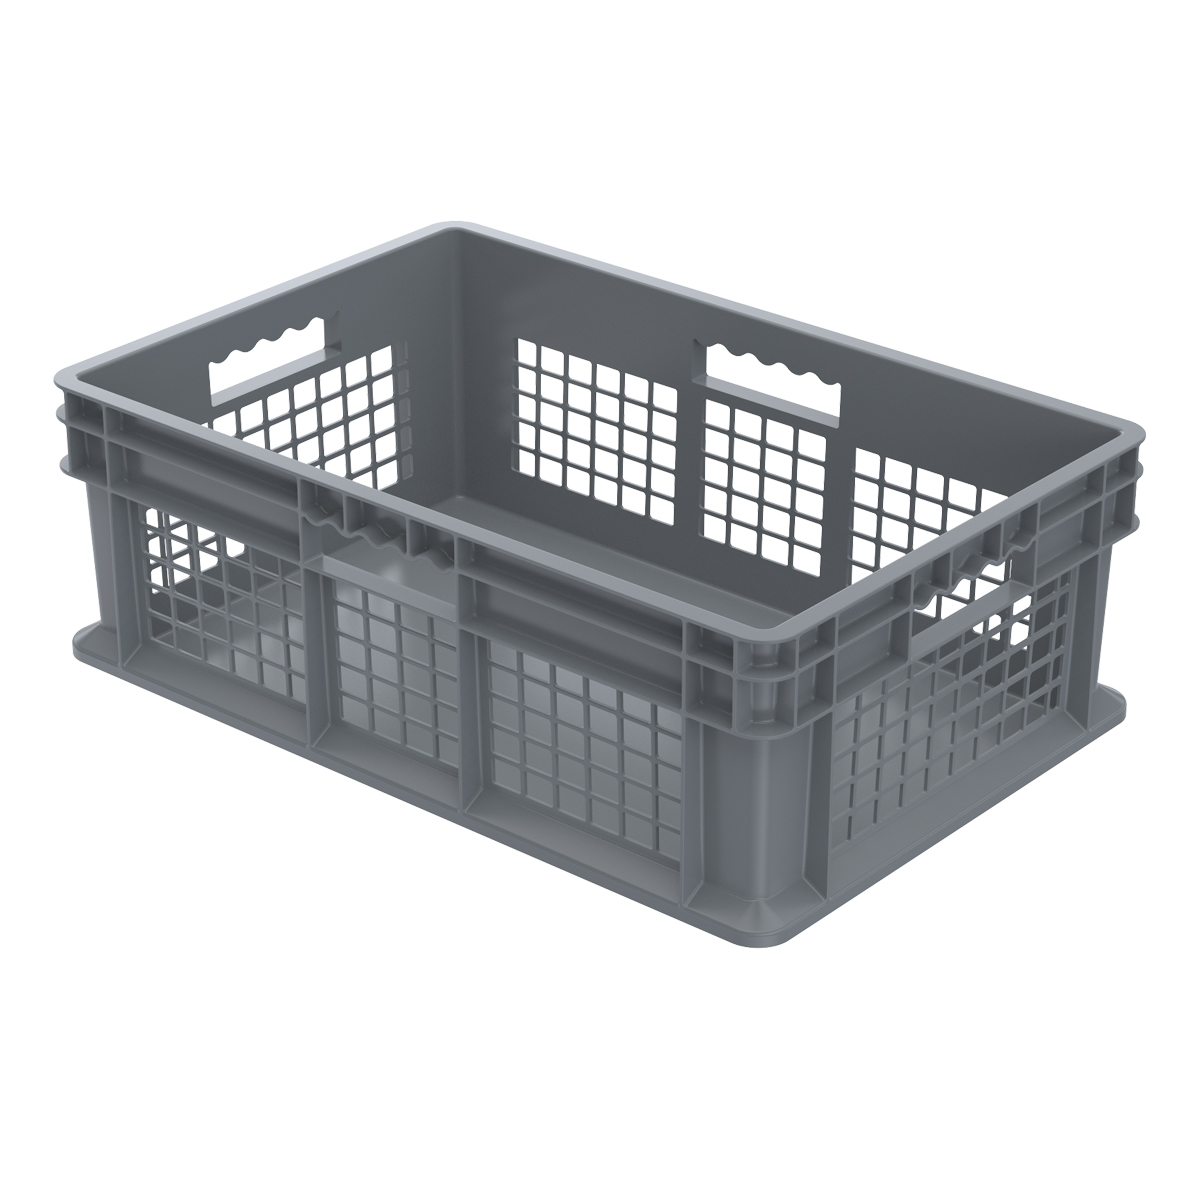 Straight Wall Container, Mesh/Solid 23-3/4 x 15-3/4 x 8-1/4, Gray (37678GREY).  This item sold in carton quantities of 4.